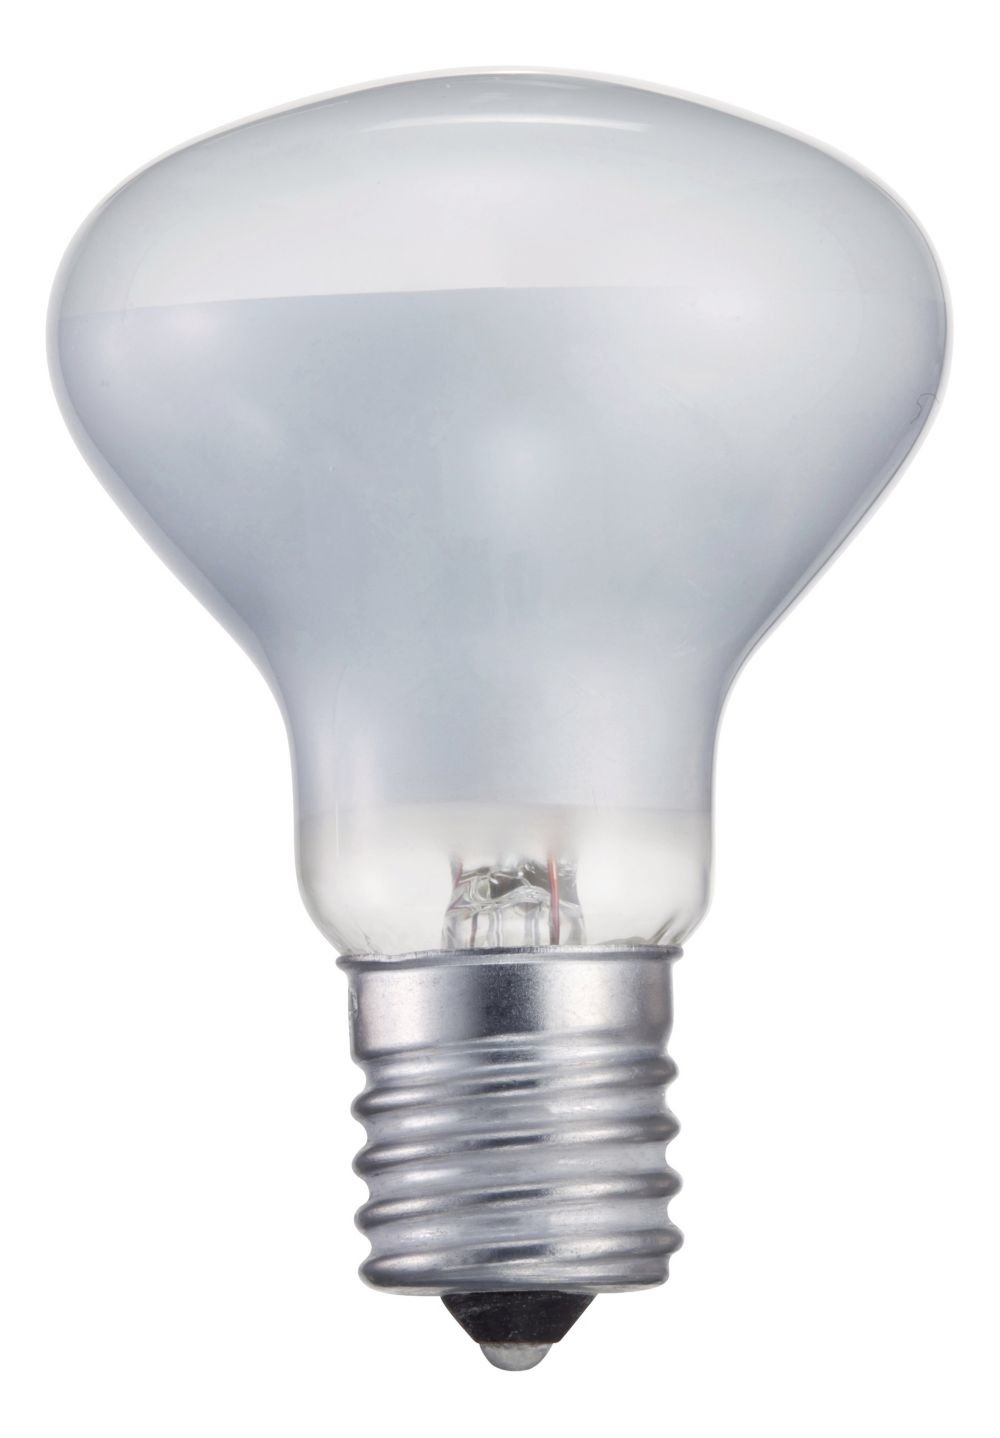 Philips 415398 Indoor Spot Light 40 Watt R14 Intermediate Base Light Bulb